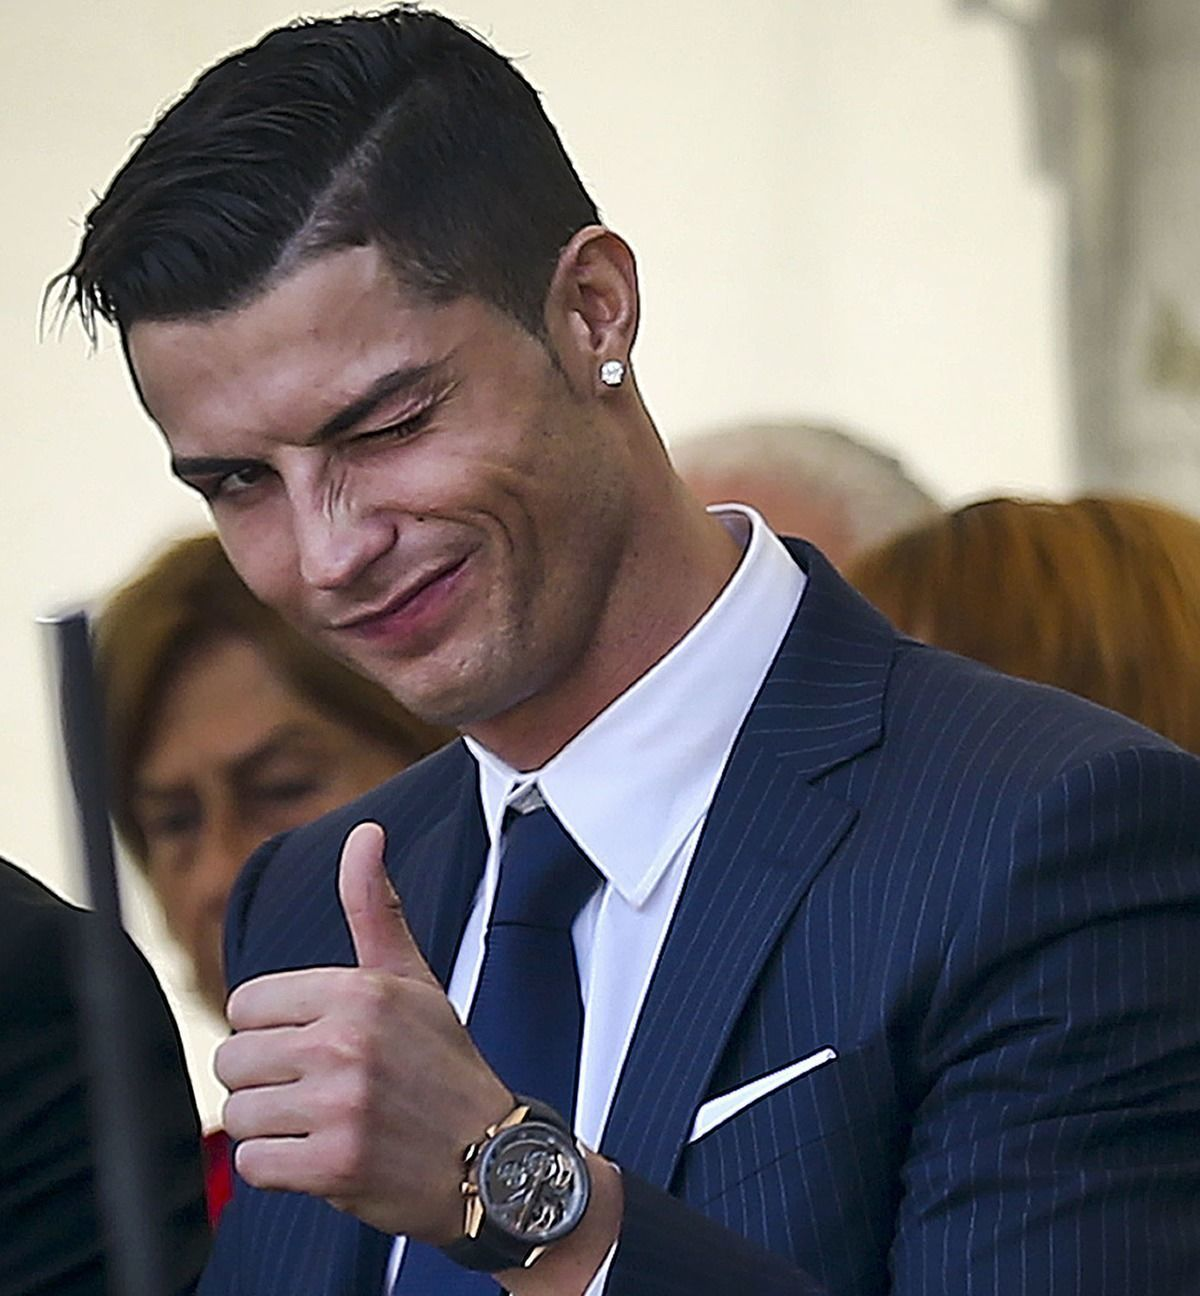 Cool 50 Stunning Cristiano Ronaldo Haircut Styles All The Time Check More At Http Macho Cristiano Ronaldo Hairstyle Cristiano Ronaldo Haircut Ronaldo Hair